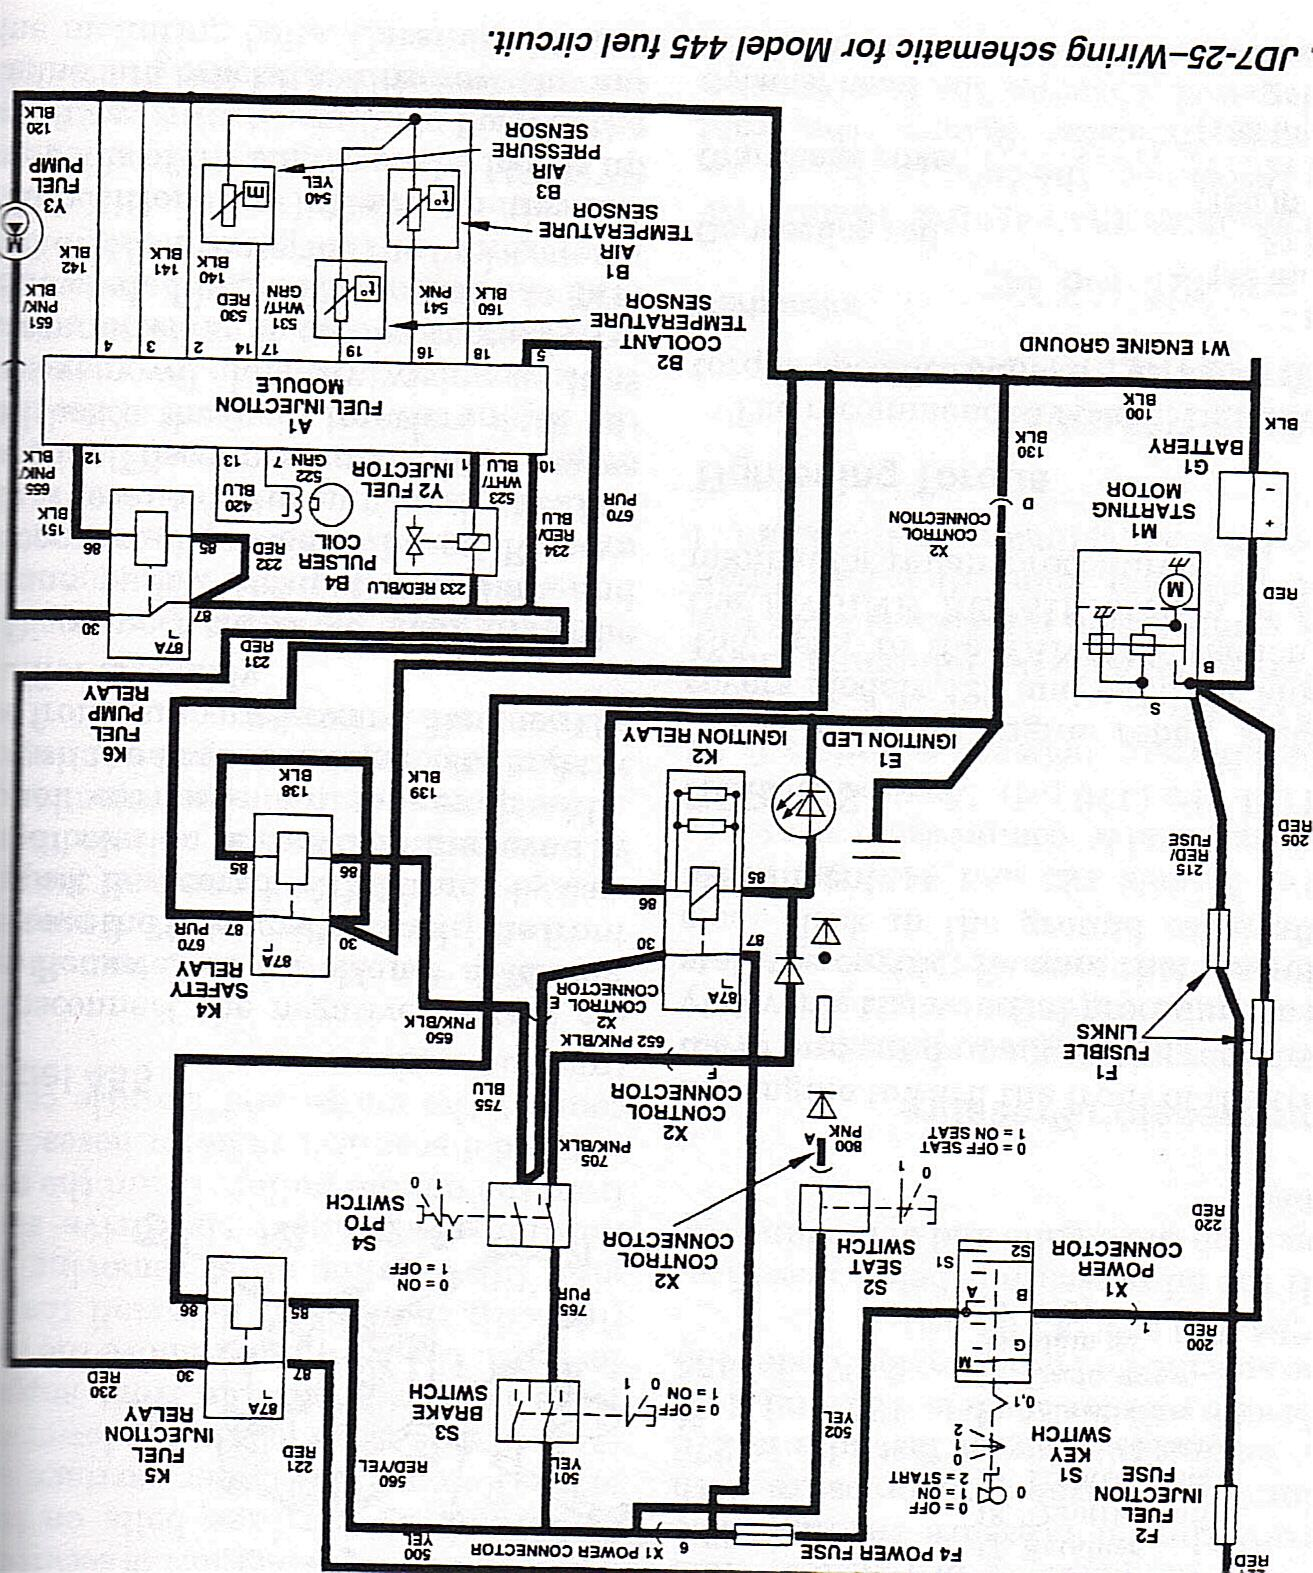 Wiring Diagram For John Deere 950 on john deere 4020 aftermarket parts